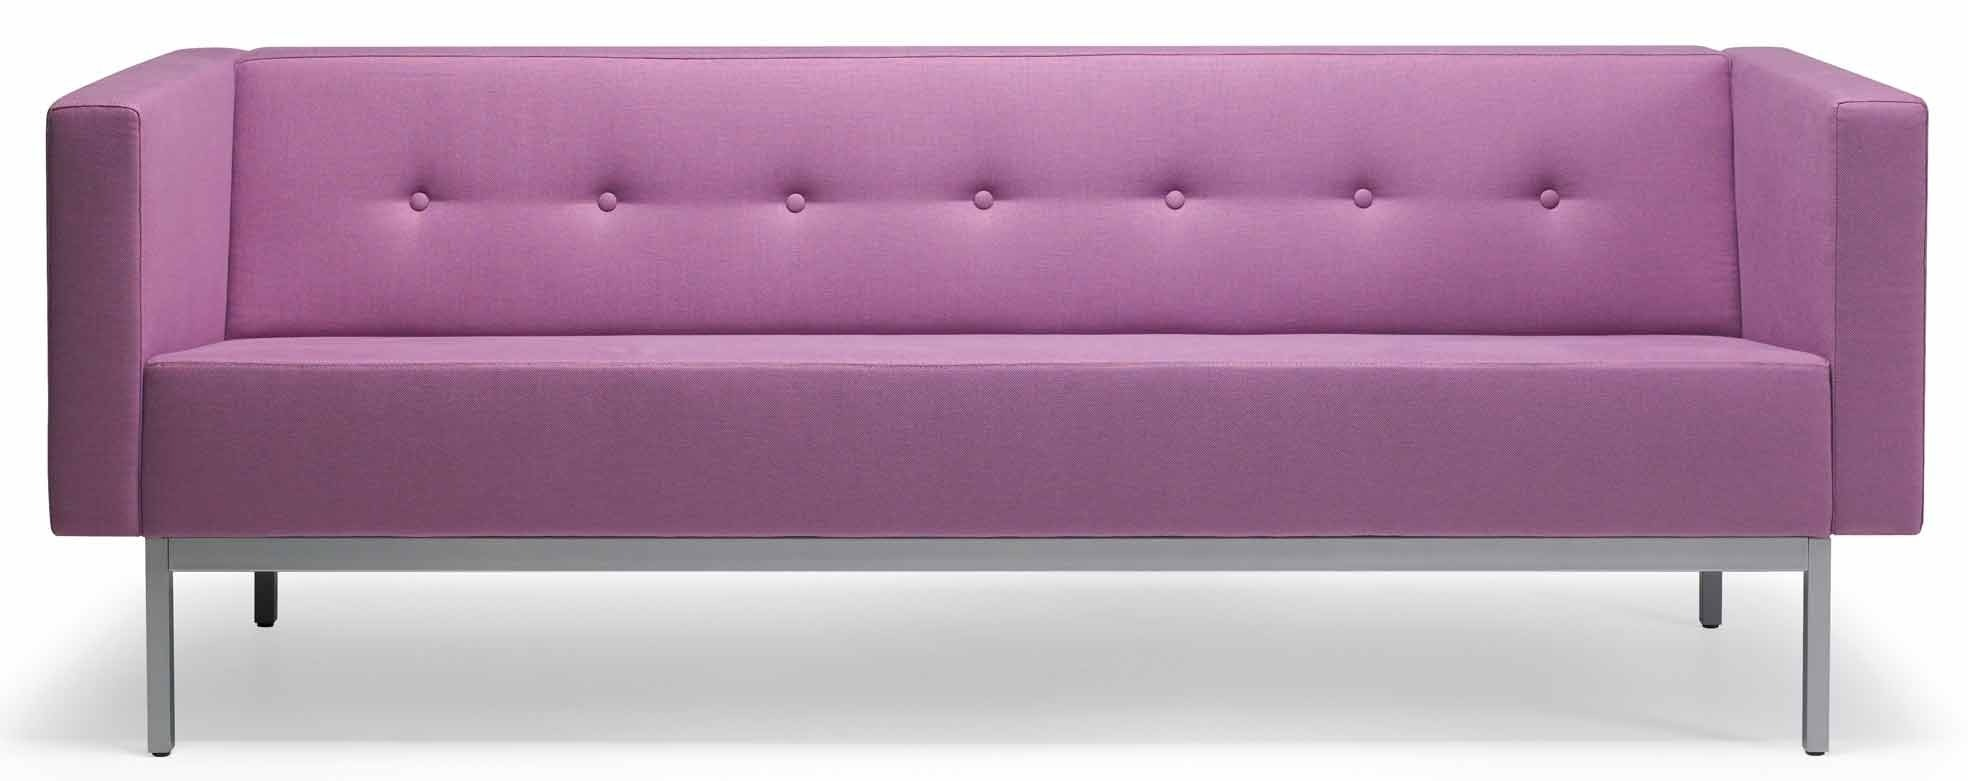 Artifort 070 Sofa with Armrests